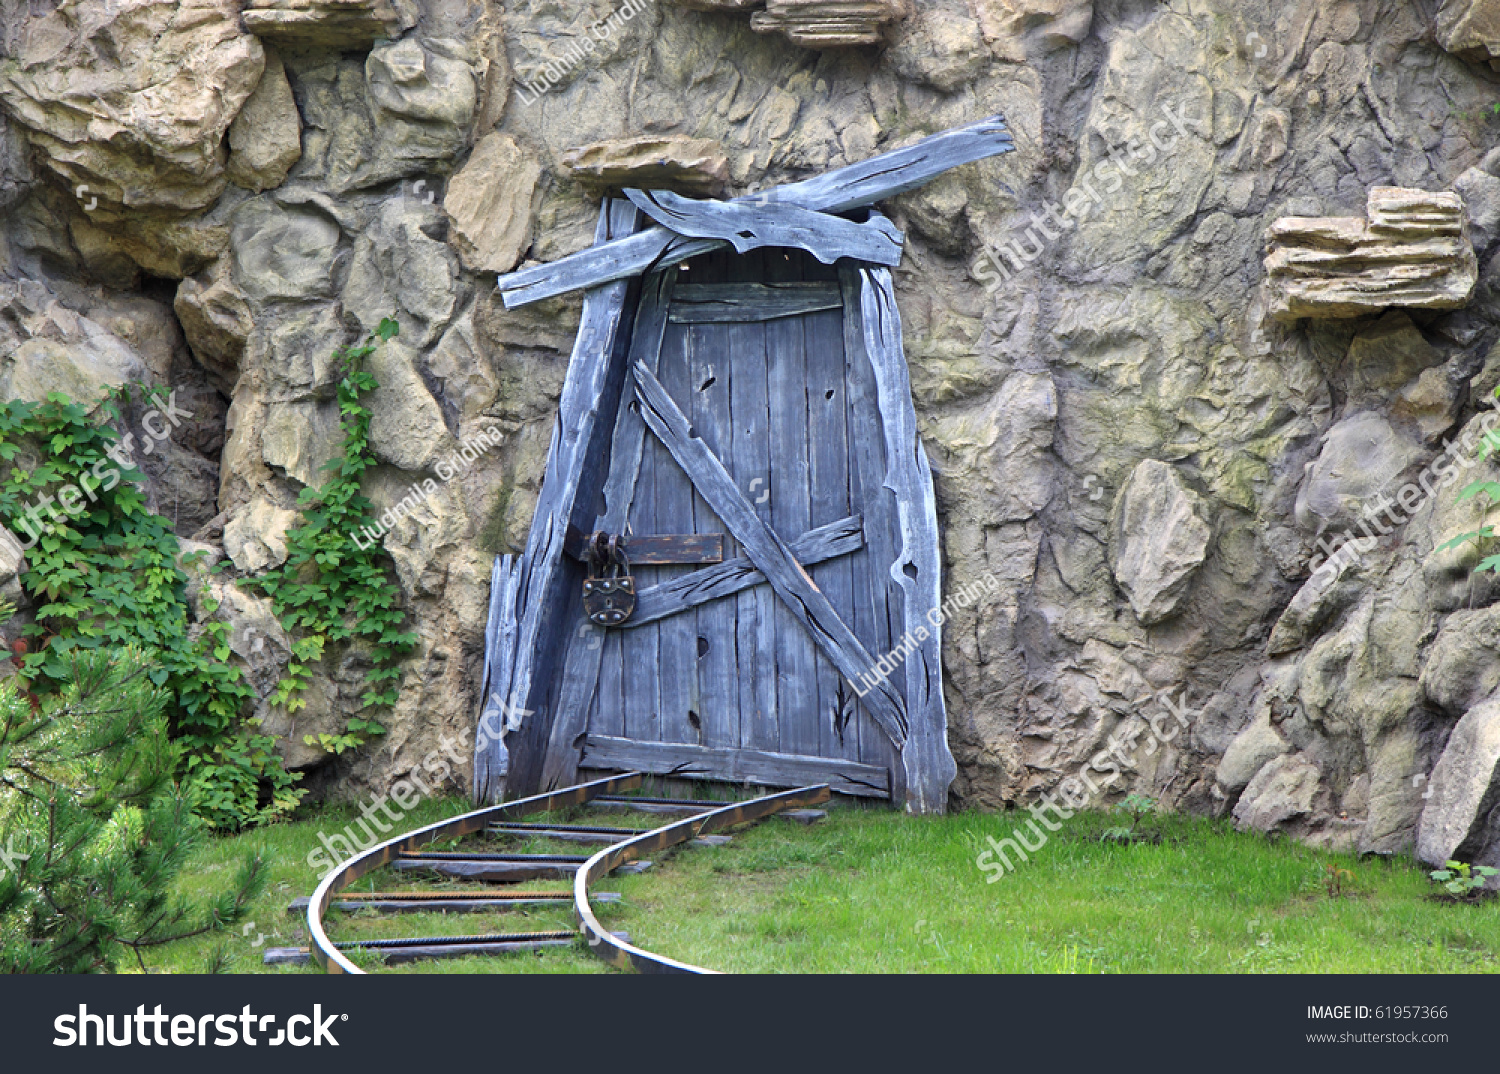 closed door to the abandoned mine & Closed Door Abandoned Mine Stock Photo 61957366 - Shutterstock Pezcame.Com